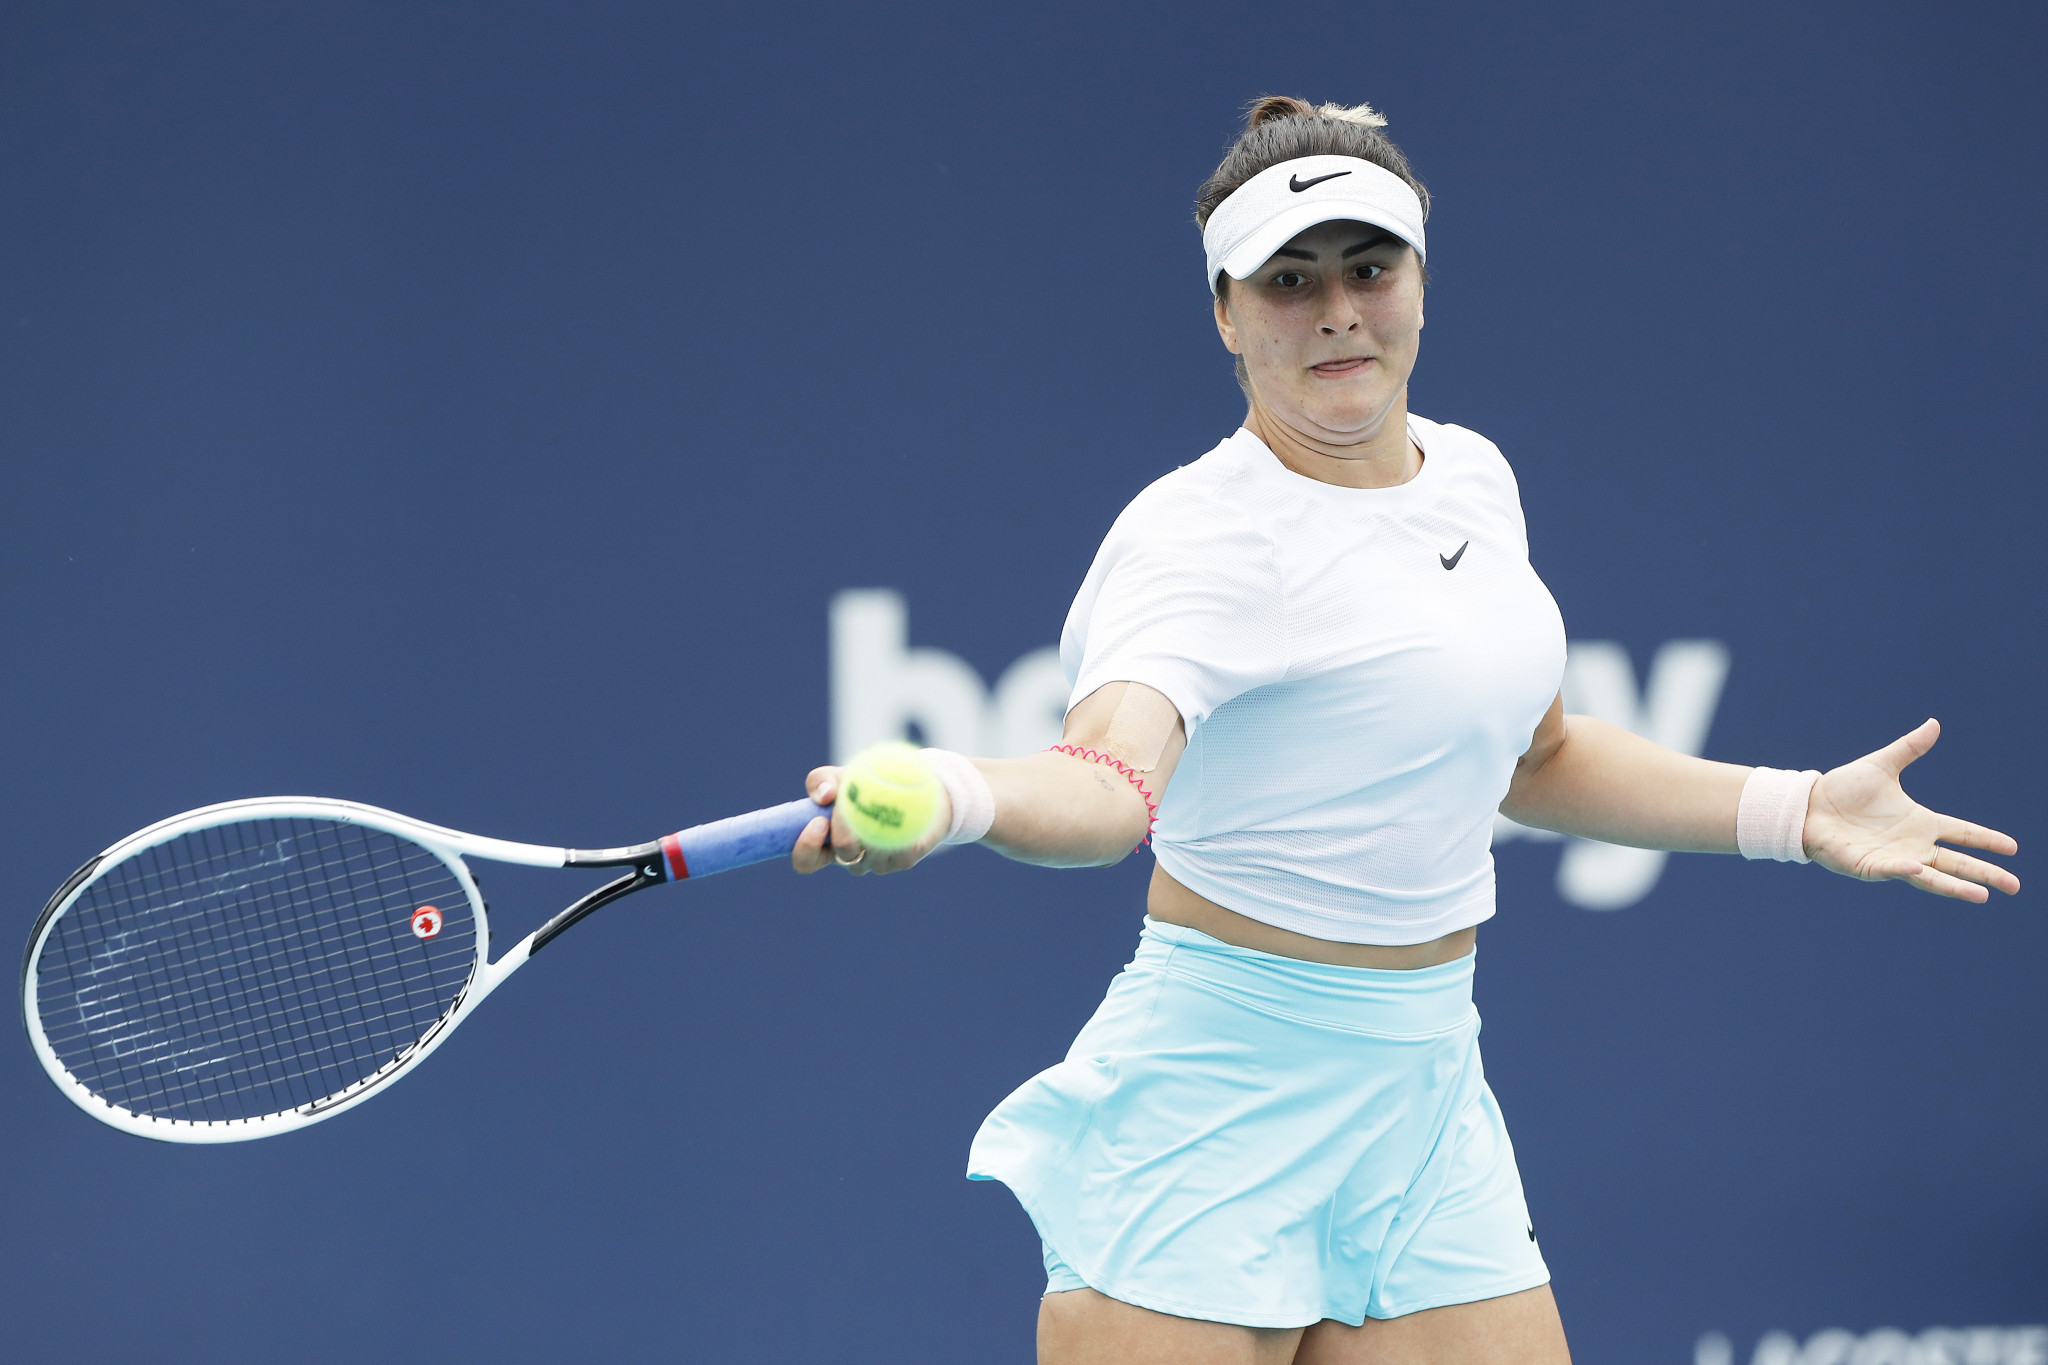 Andreescu ruled out of Madrid Open after testing positive for COVID-19